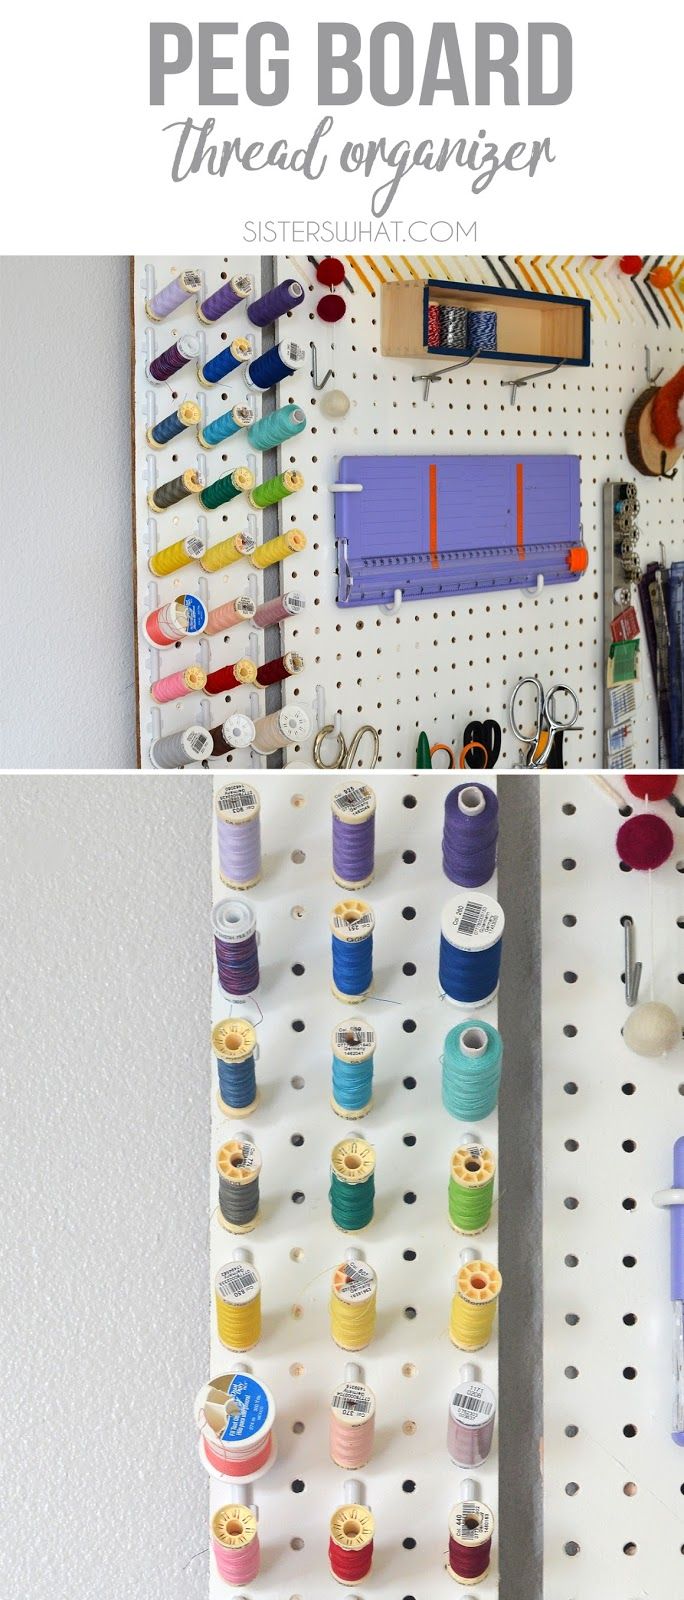 a fun and efficient way to organize thread using a pegboard in craft room